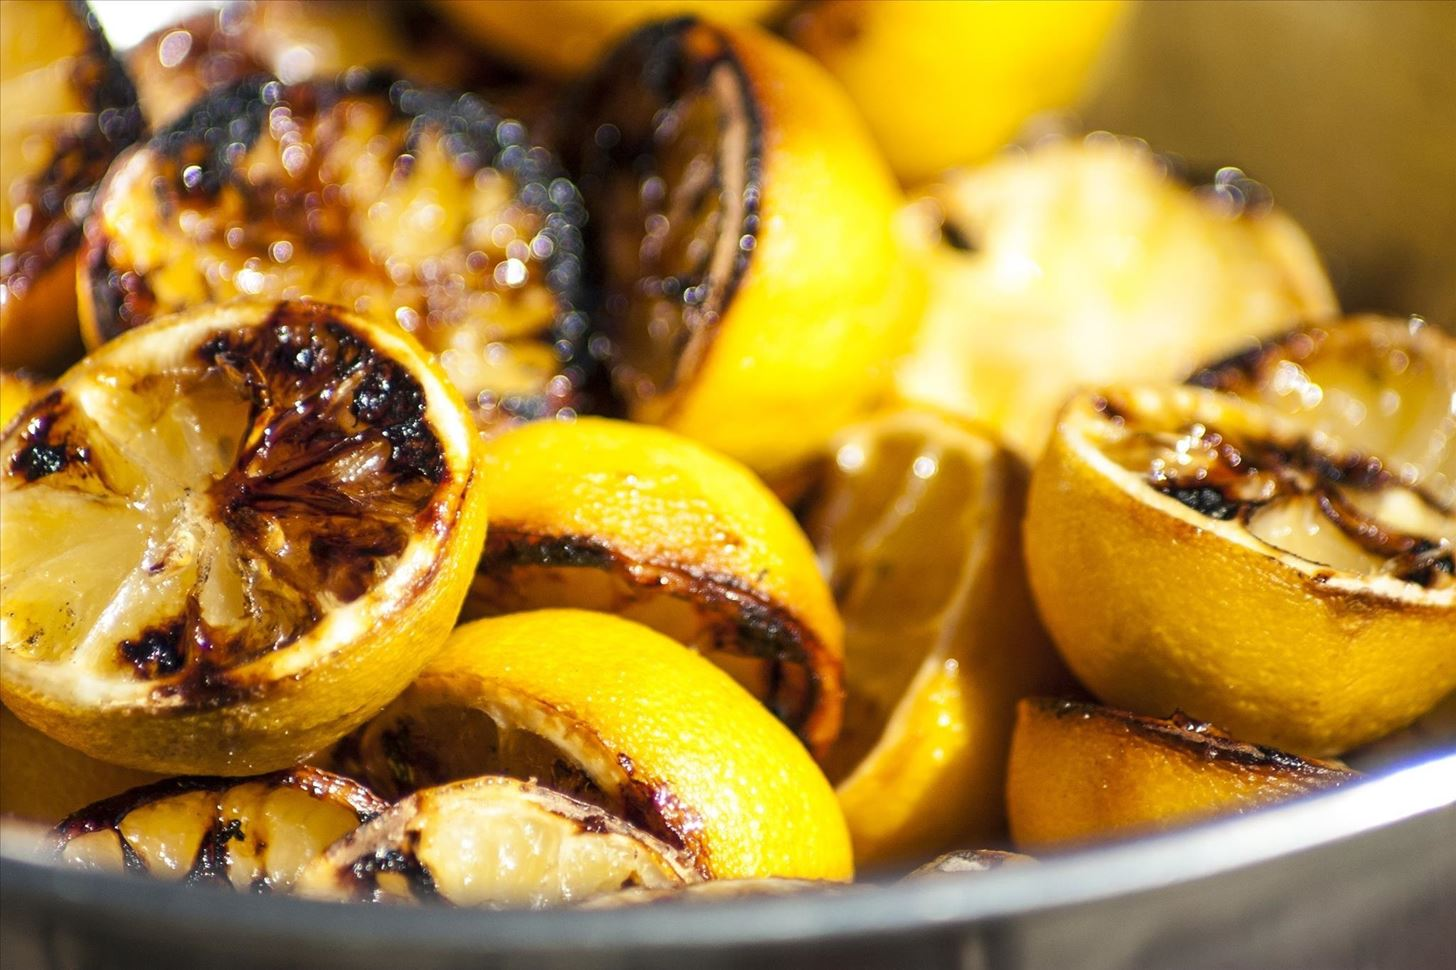 How to Make Grilled Lemonade, the Ultimate Summer Drink